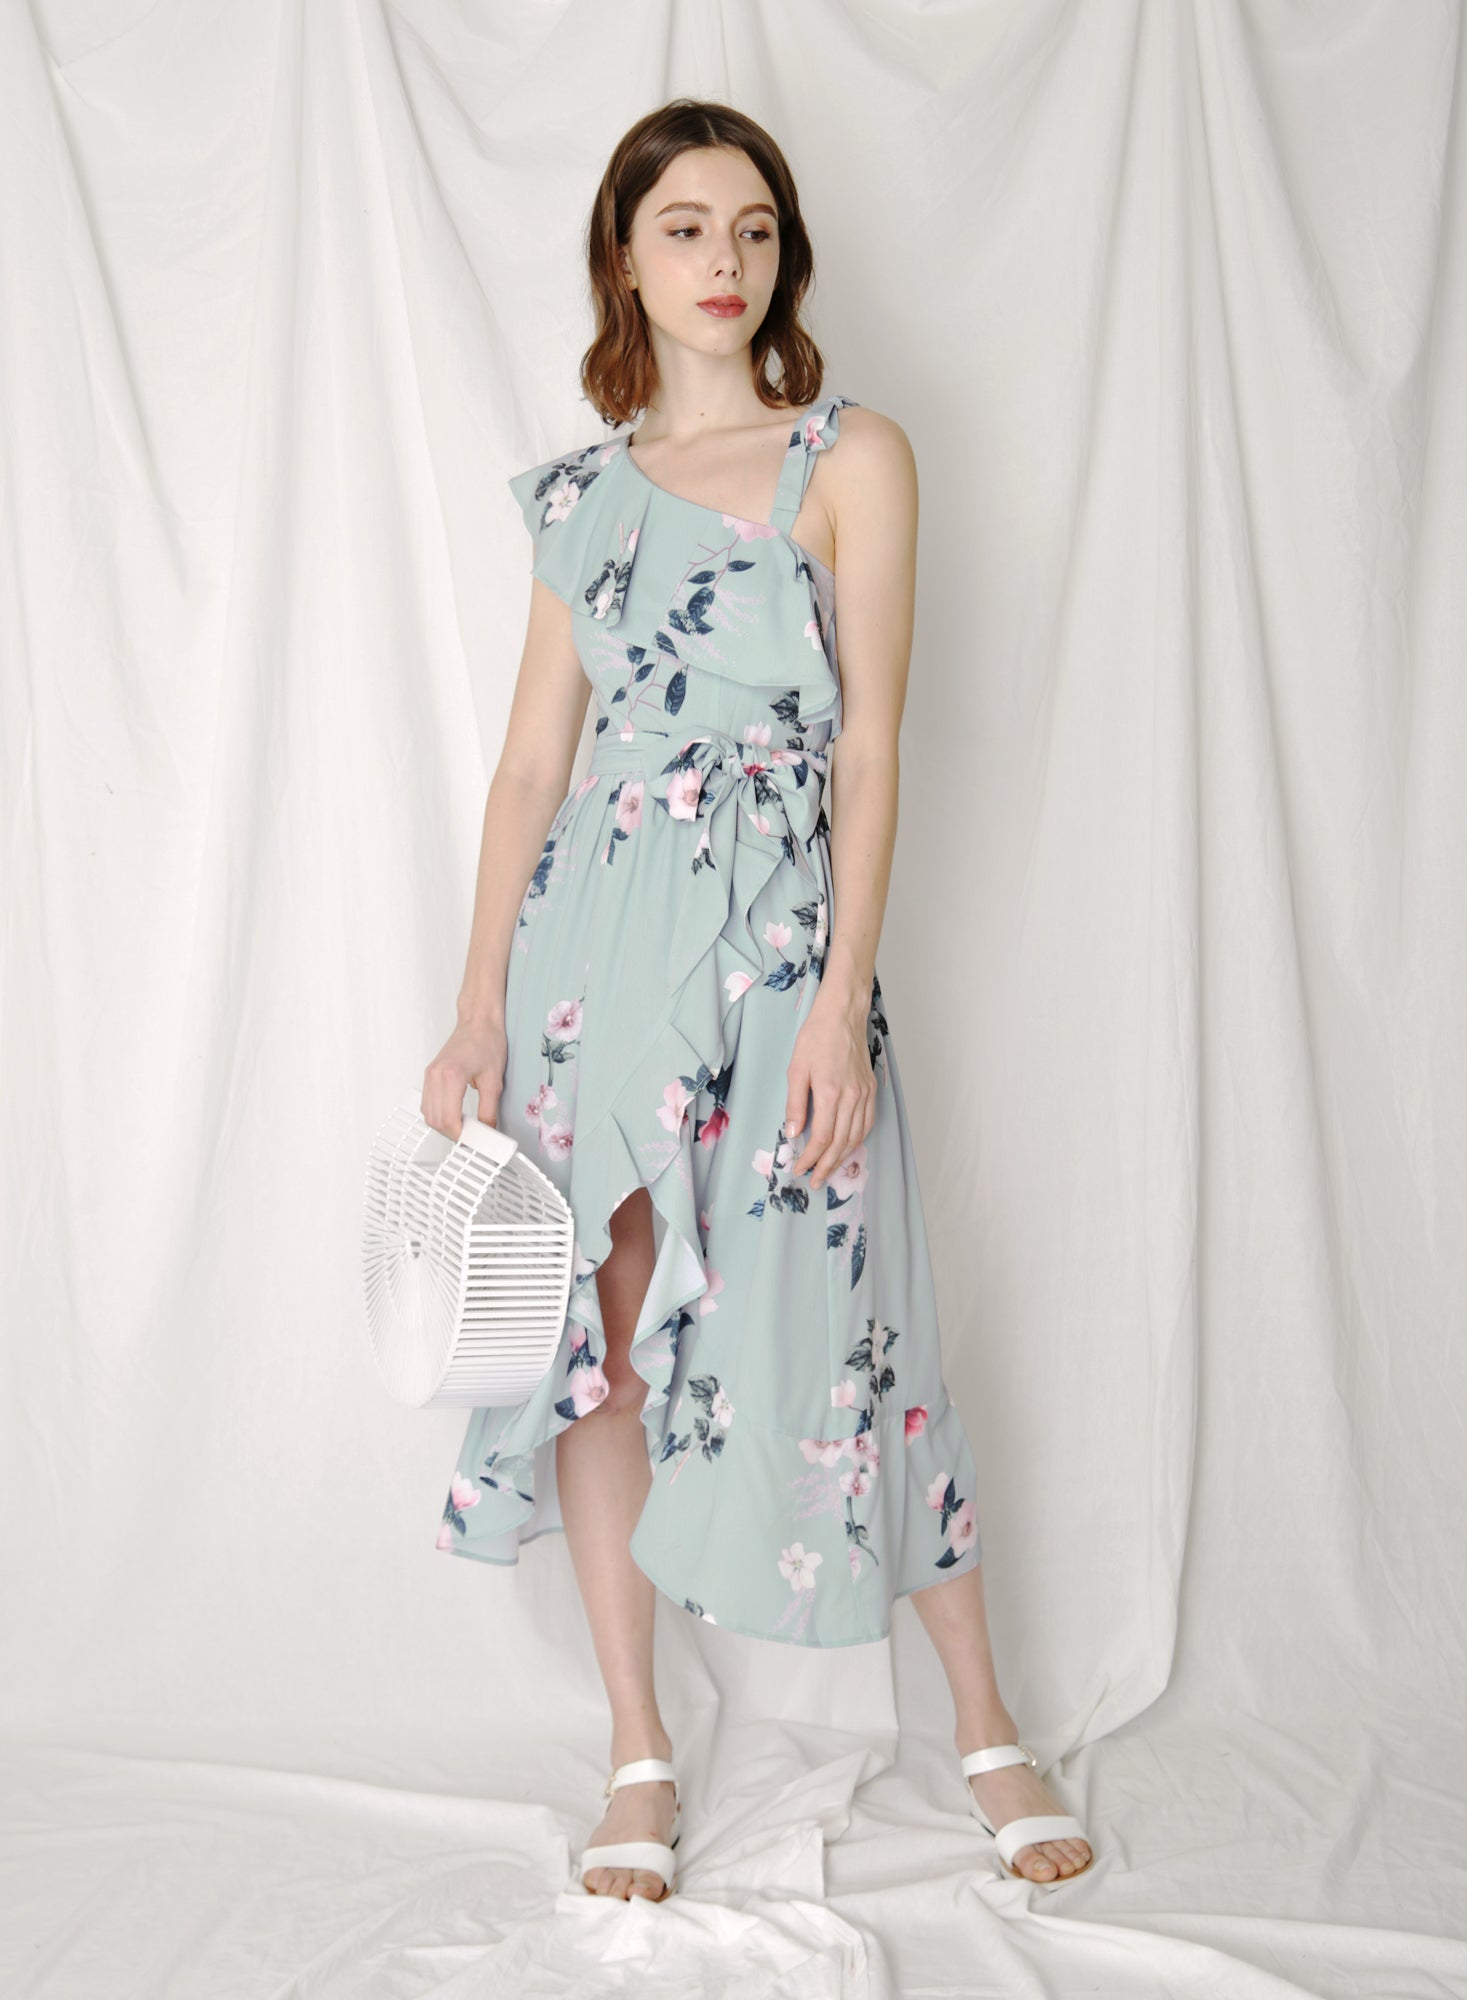 Bespoke Ruffled Floral Maxi Dress (Jade) at $ 45.00 only sold at And Well Dressed Online Fashion Store Singapore